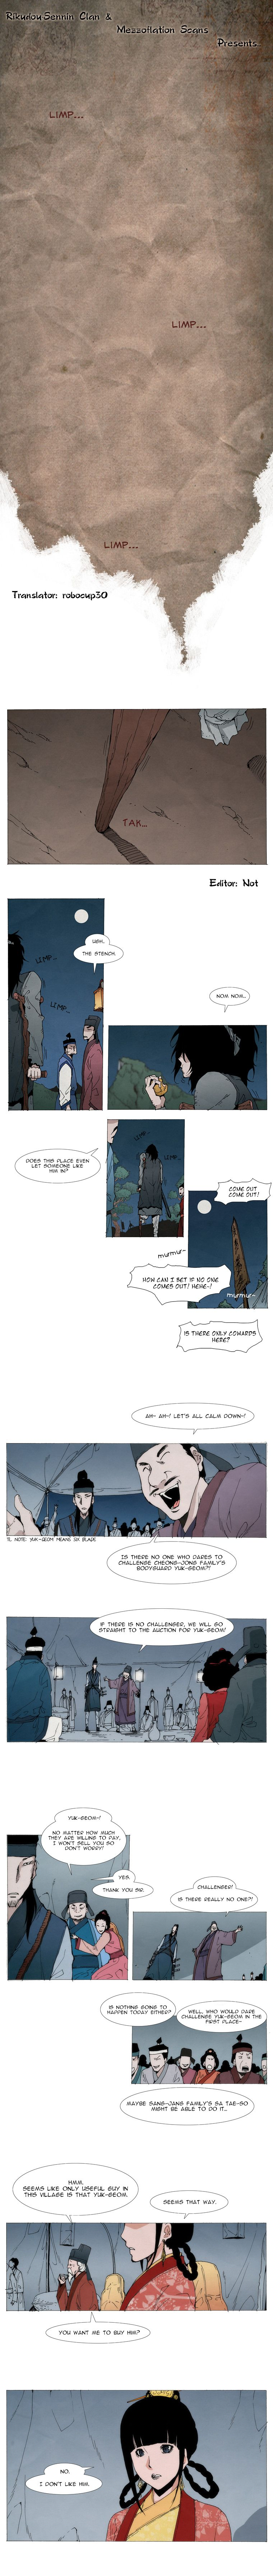 Living with One Leg 1 Page 1